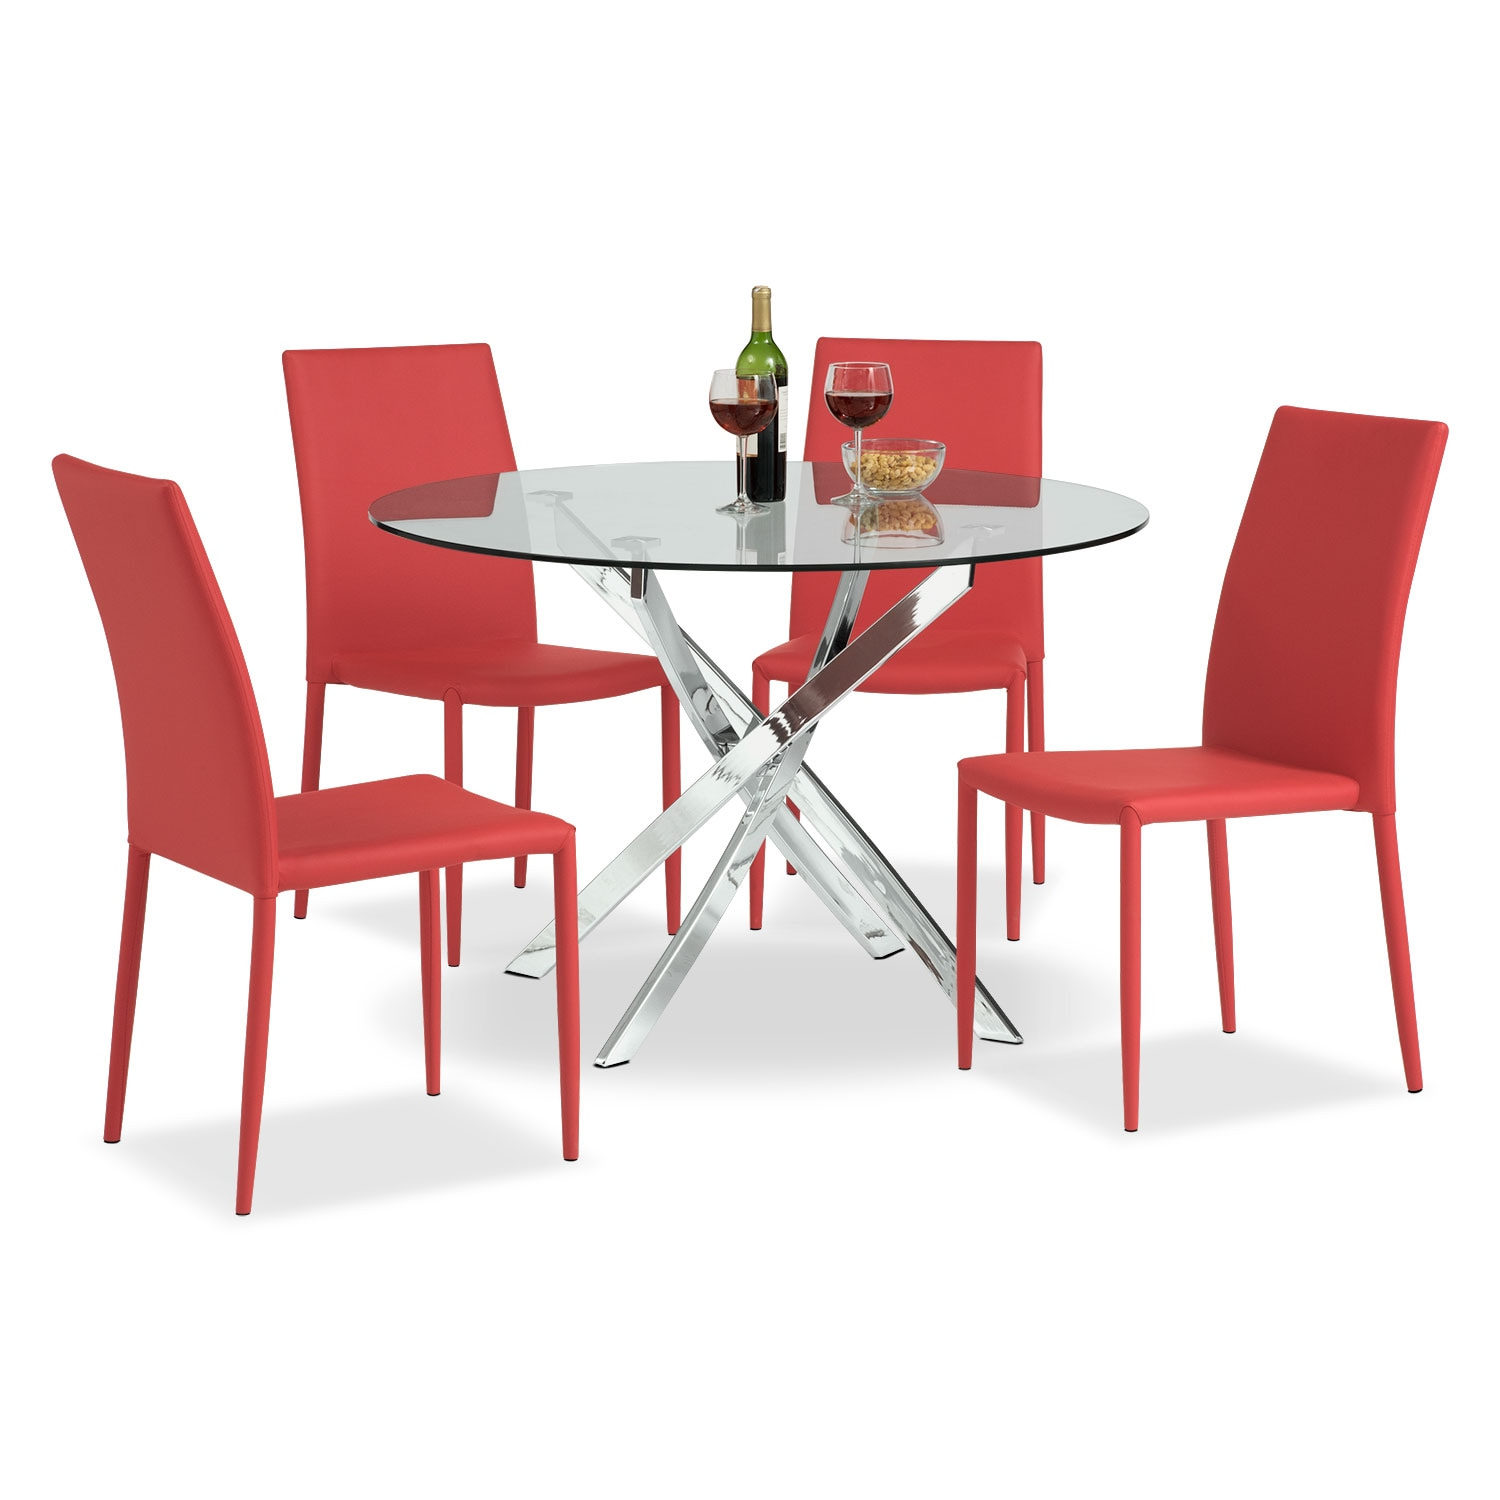 Quattro Table and 4 Chairs - Red